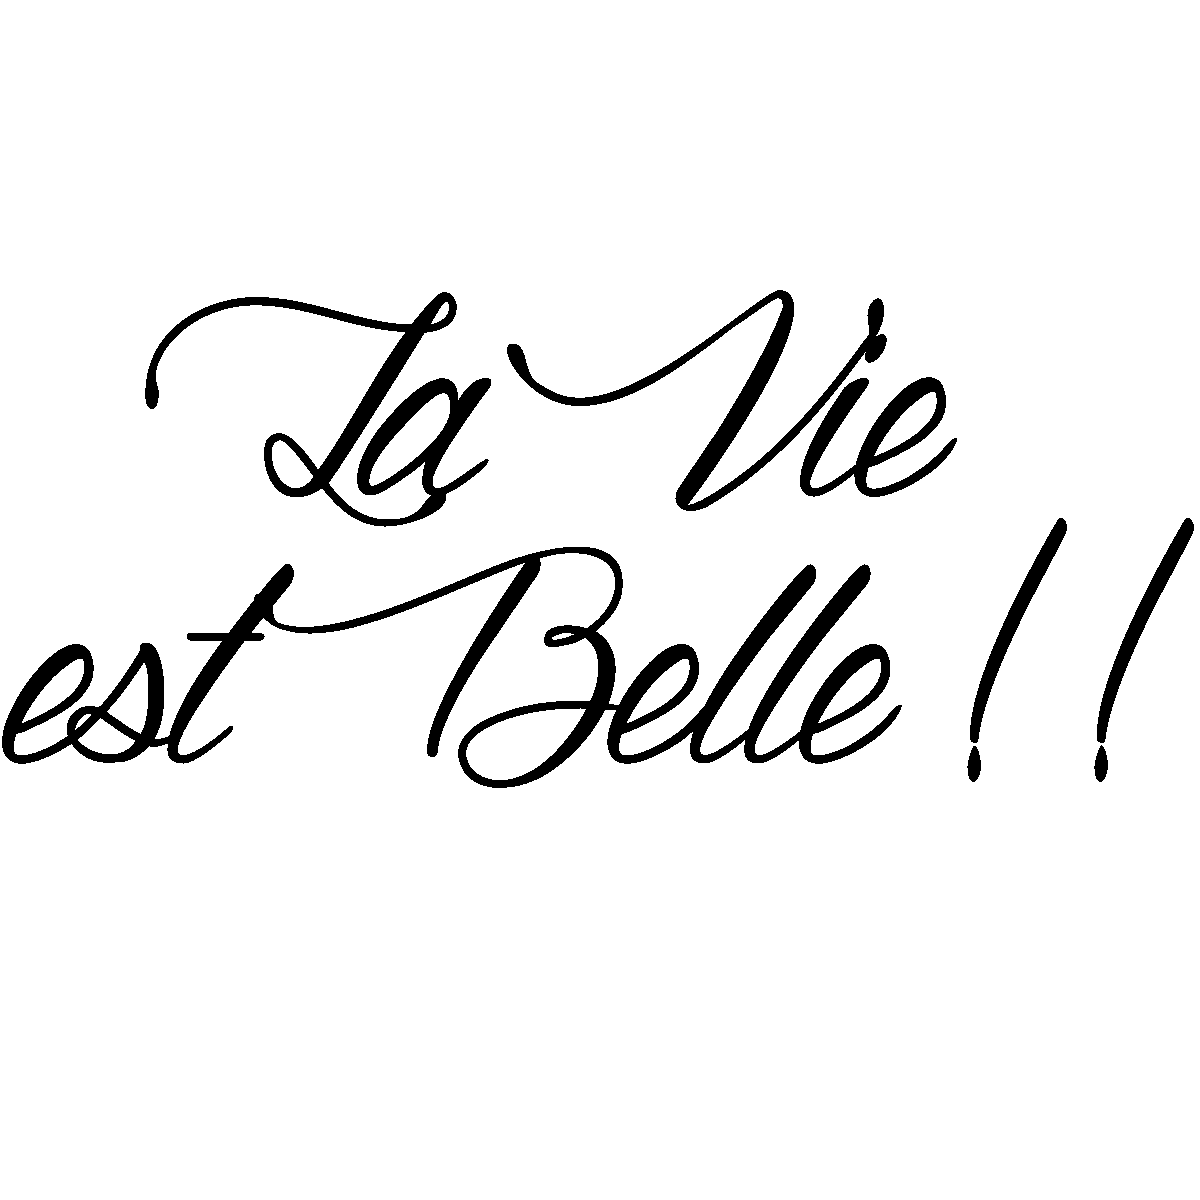 sticker citation la vie est belle stickers citations fran ais ambiance sticker. Black Bedroom Furniture Sets. Home Design Ideas